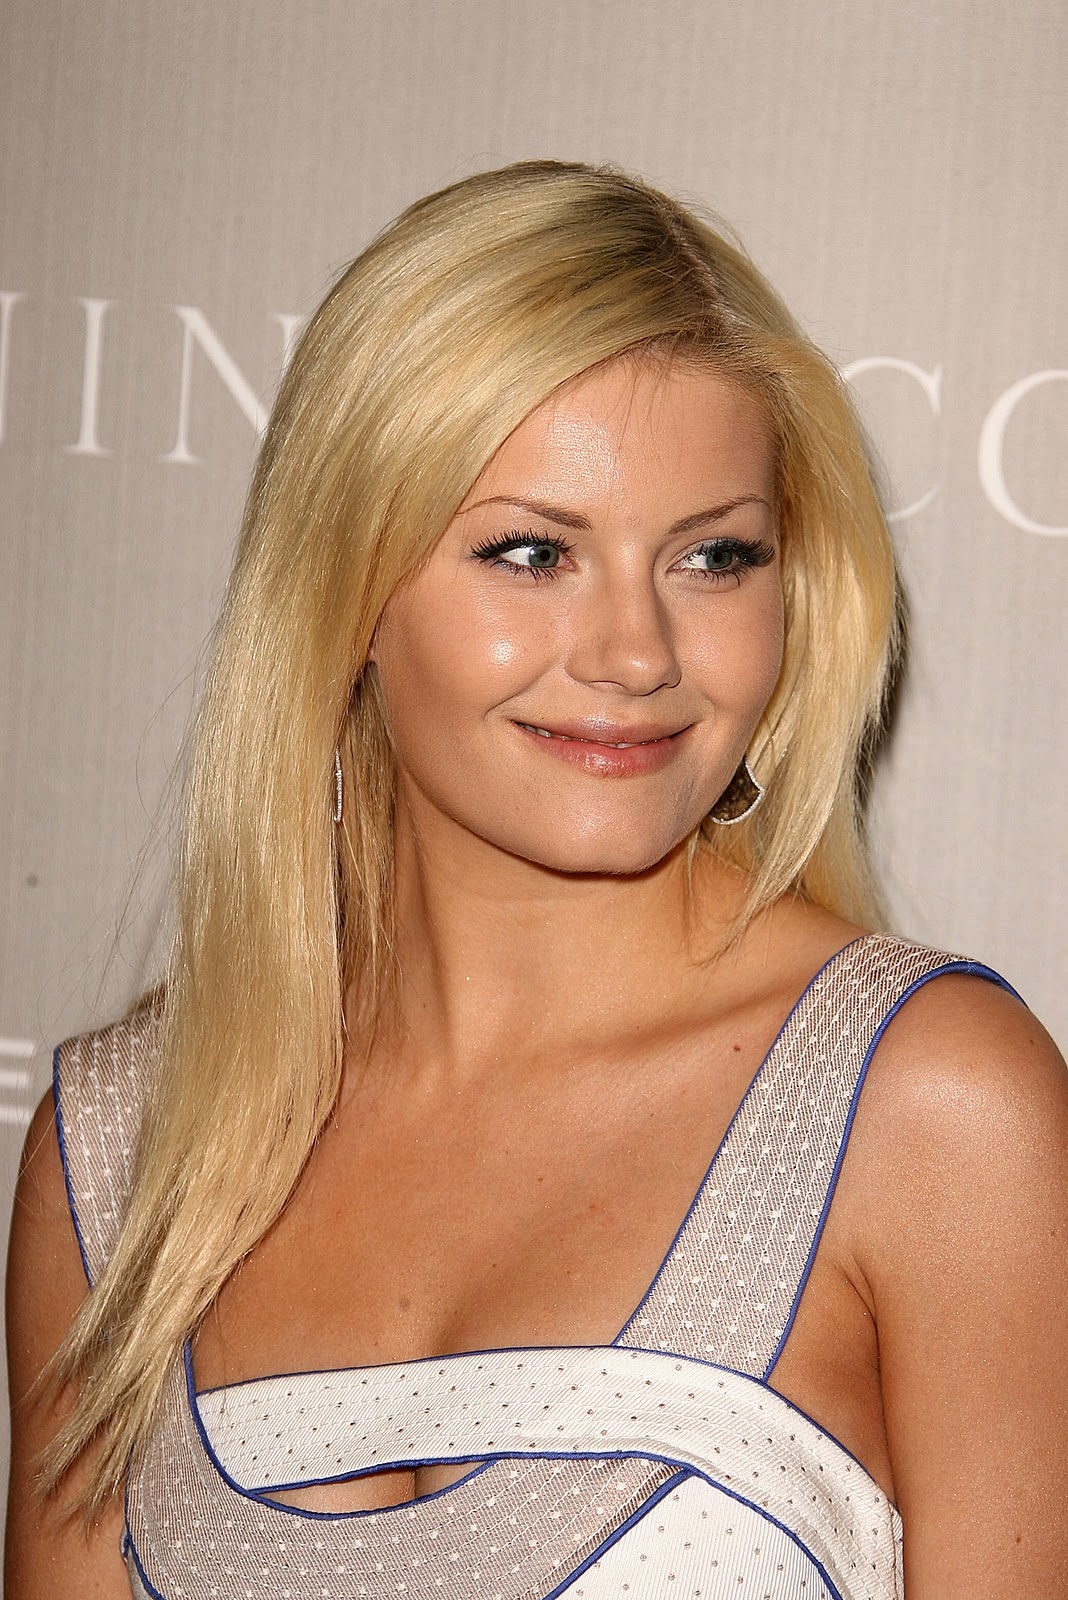 http://3.bp.blogspot.com/-tGCwwG8TgMs/Tn6P924NVII/AAAAAAAAAkg/_vZpzqH8nb4/s1600/Elisha-Cuthbert-pics-images-photos-movies-actress-flims+4.jpg